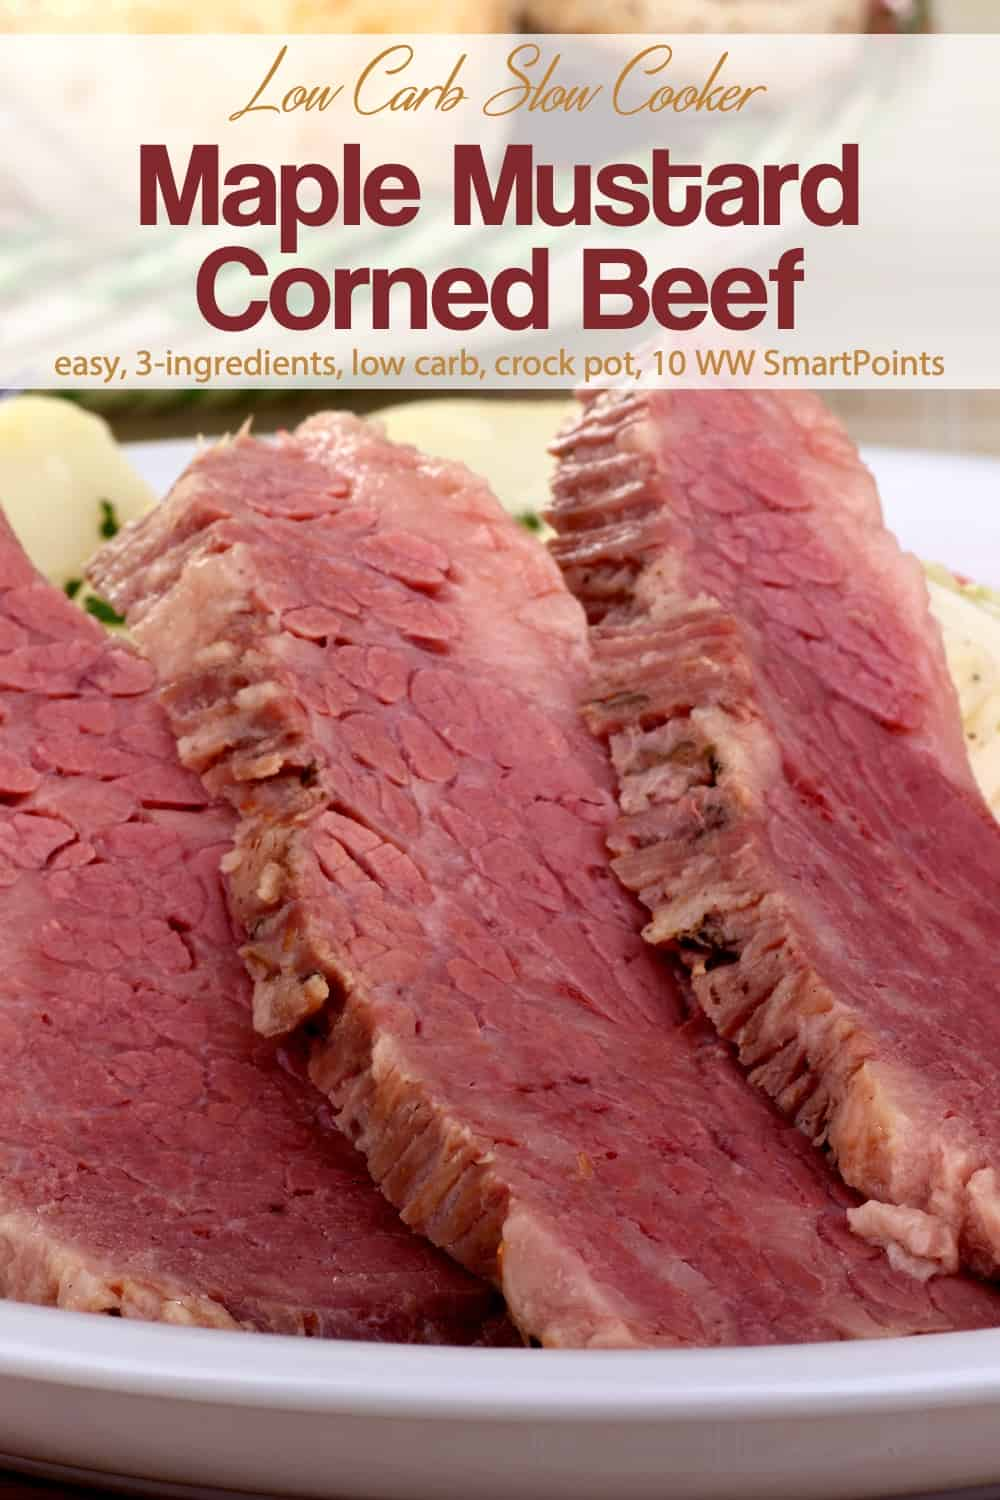 Slow Cooker Maple Mustard Corned Beef is a great alternative to traditional boiled corned beef, that turns out tender and flavorful. You just slather the meat with a maple syrup and mustard glaze and let cook in the slow cooker on LOW. No additional liquid required! #slowcookermaplemustardcornedbeef #maplemustardcornedbeef #slowcookercornedbeef #cornedbeef #slowcooker #crockpot